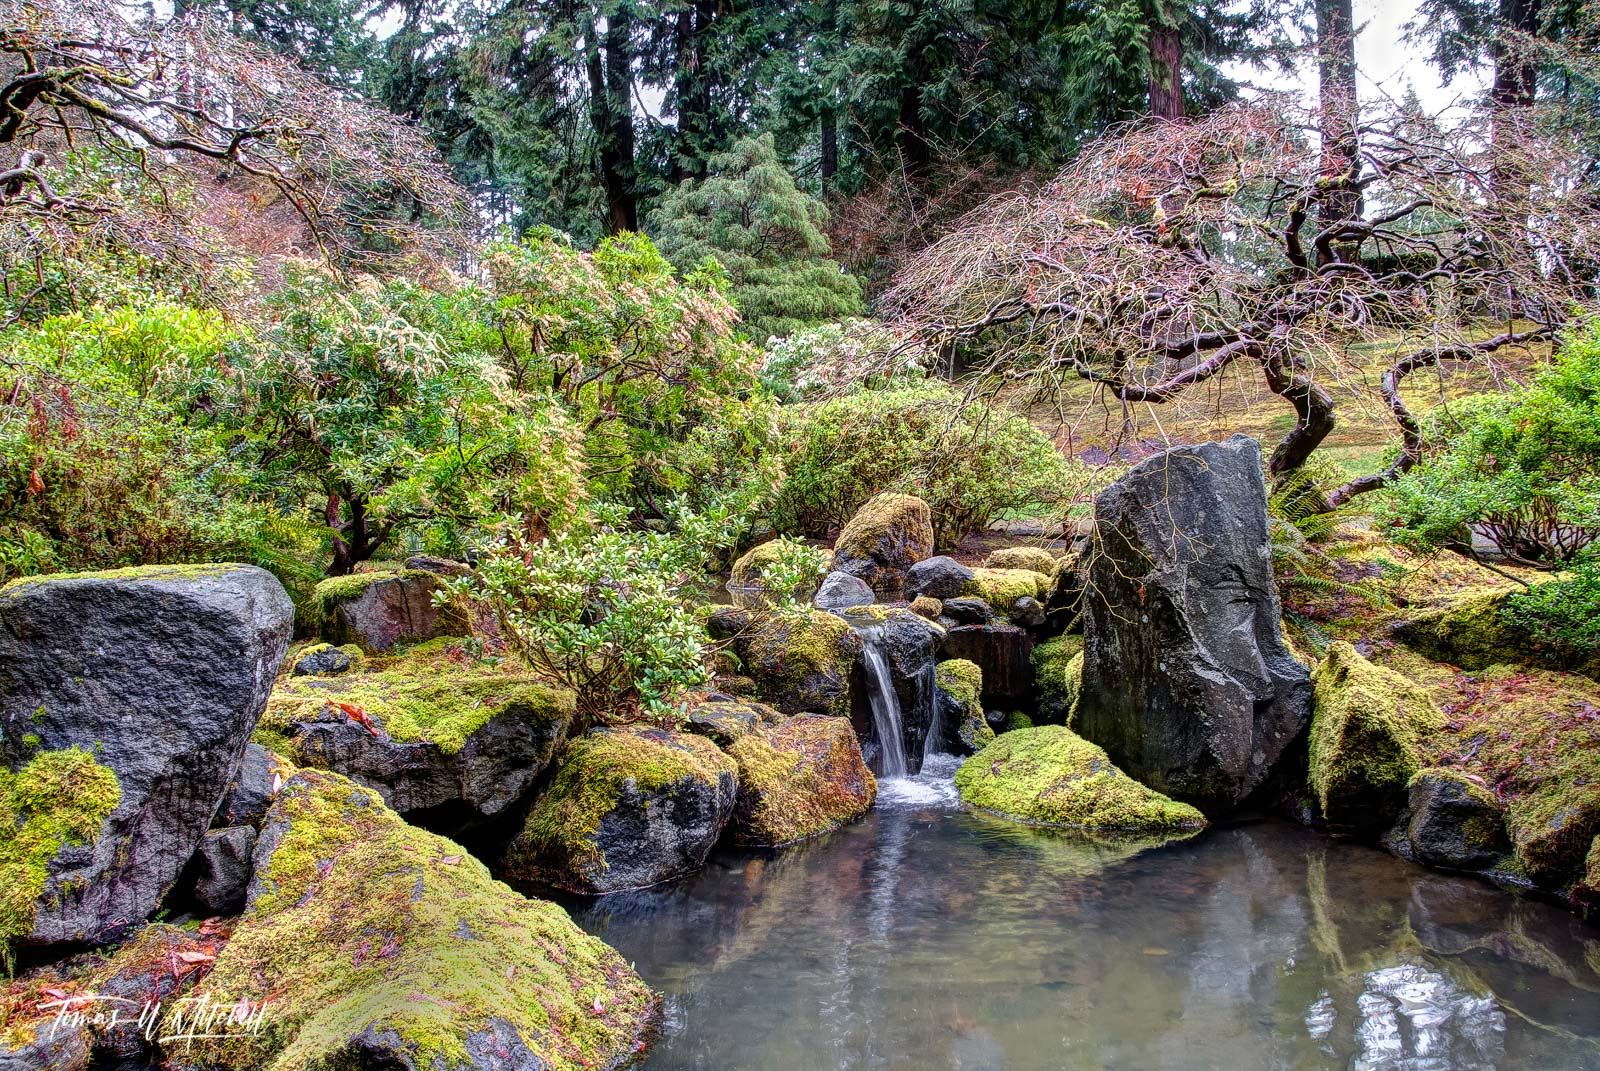 Limited Edition of 50 Museum Grade, Fine Art Prints. March 27,2012 was my first time visiting this garden and I found the...